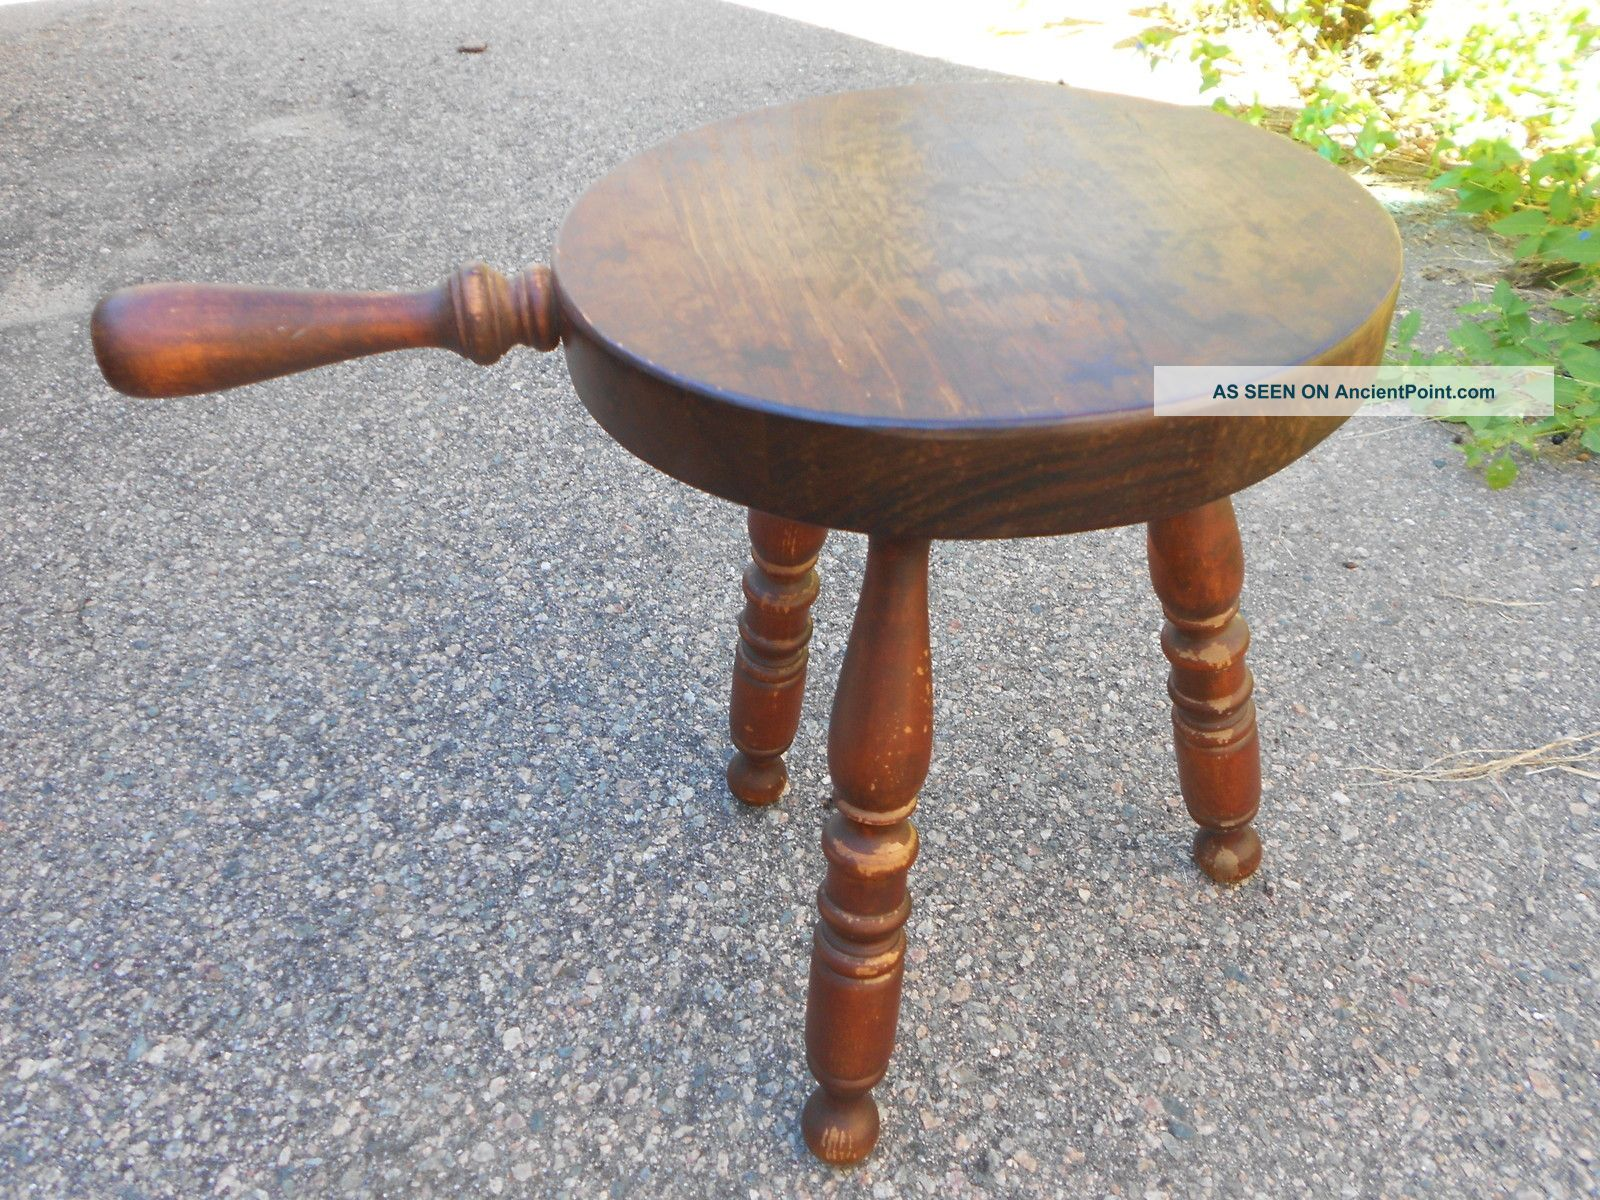 Vintage Wood Milking Stool Stars Eagle Turned Handle Leg Barn Chair Mid Modern 1900-1950 photo